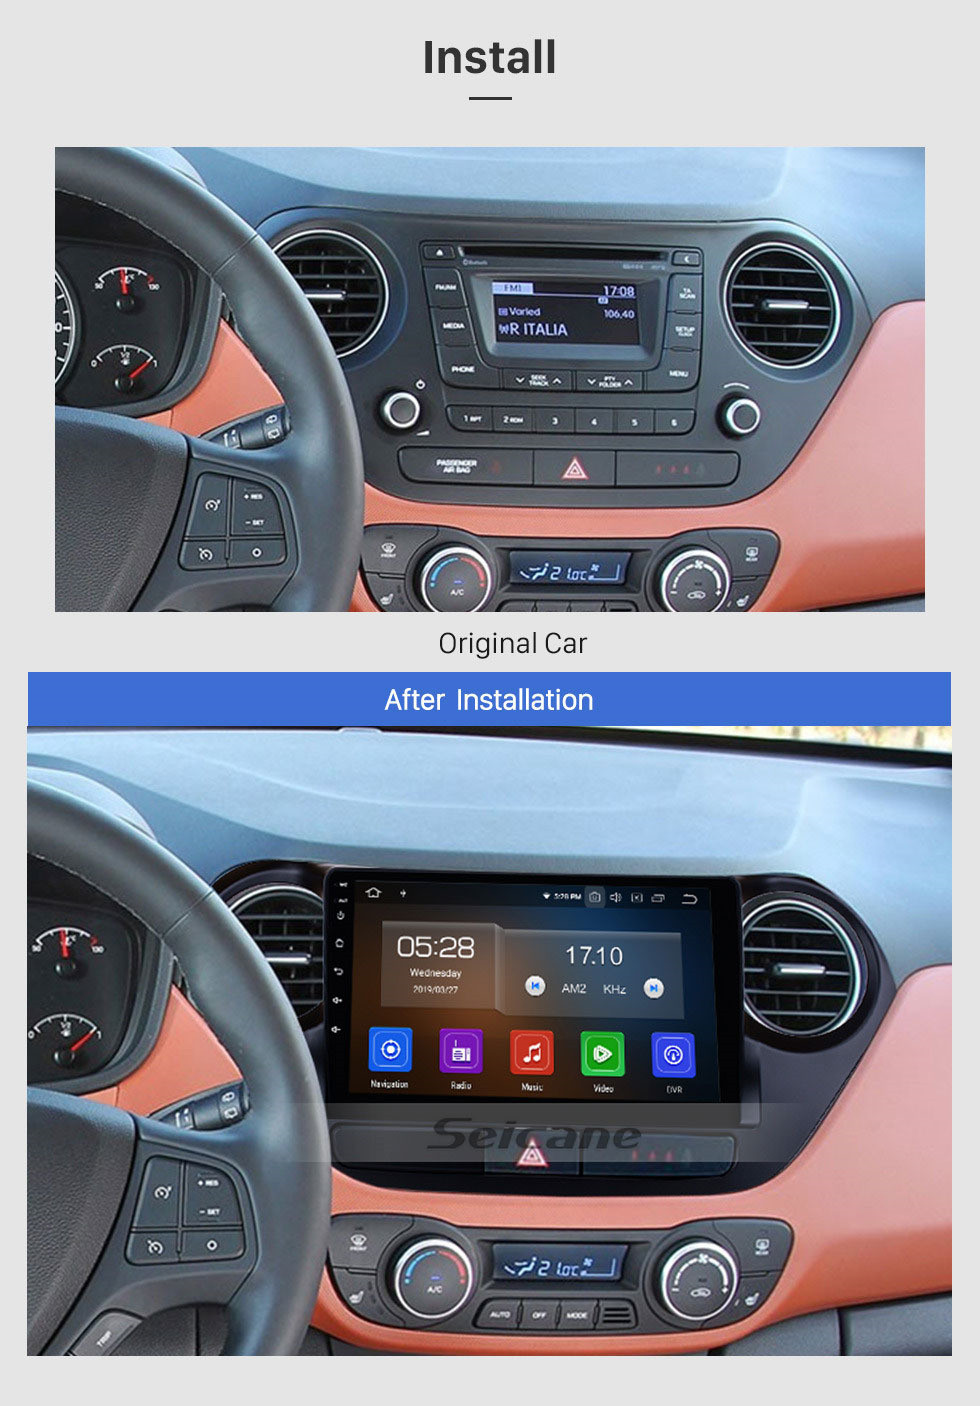 Seicane Android 10.0 9 inch 2013 2014 2015 2016 HYUNDAI I10 Left Hand Driving Radio Bluetooth GPS navigation system HD 1024*600 touch screen OBD2 DVR Rearview camera DVD player TV 1080P Video 3G WIFI Steering Wheel Control USB Mirror link